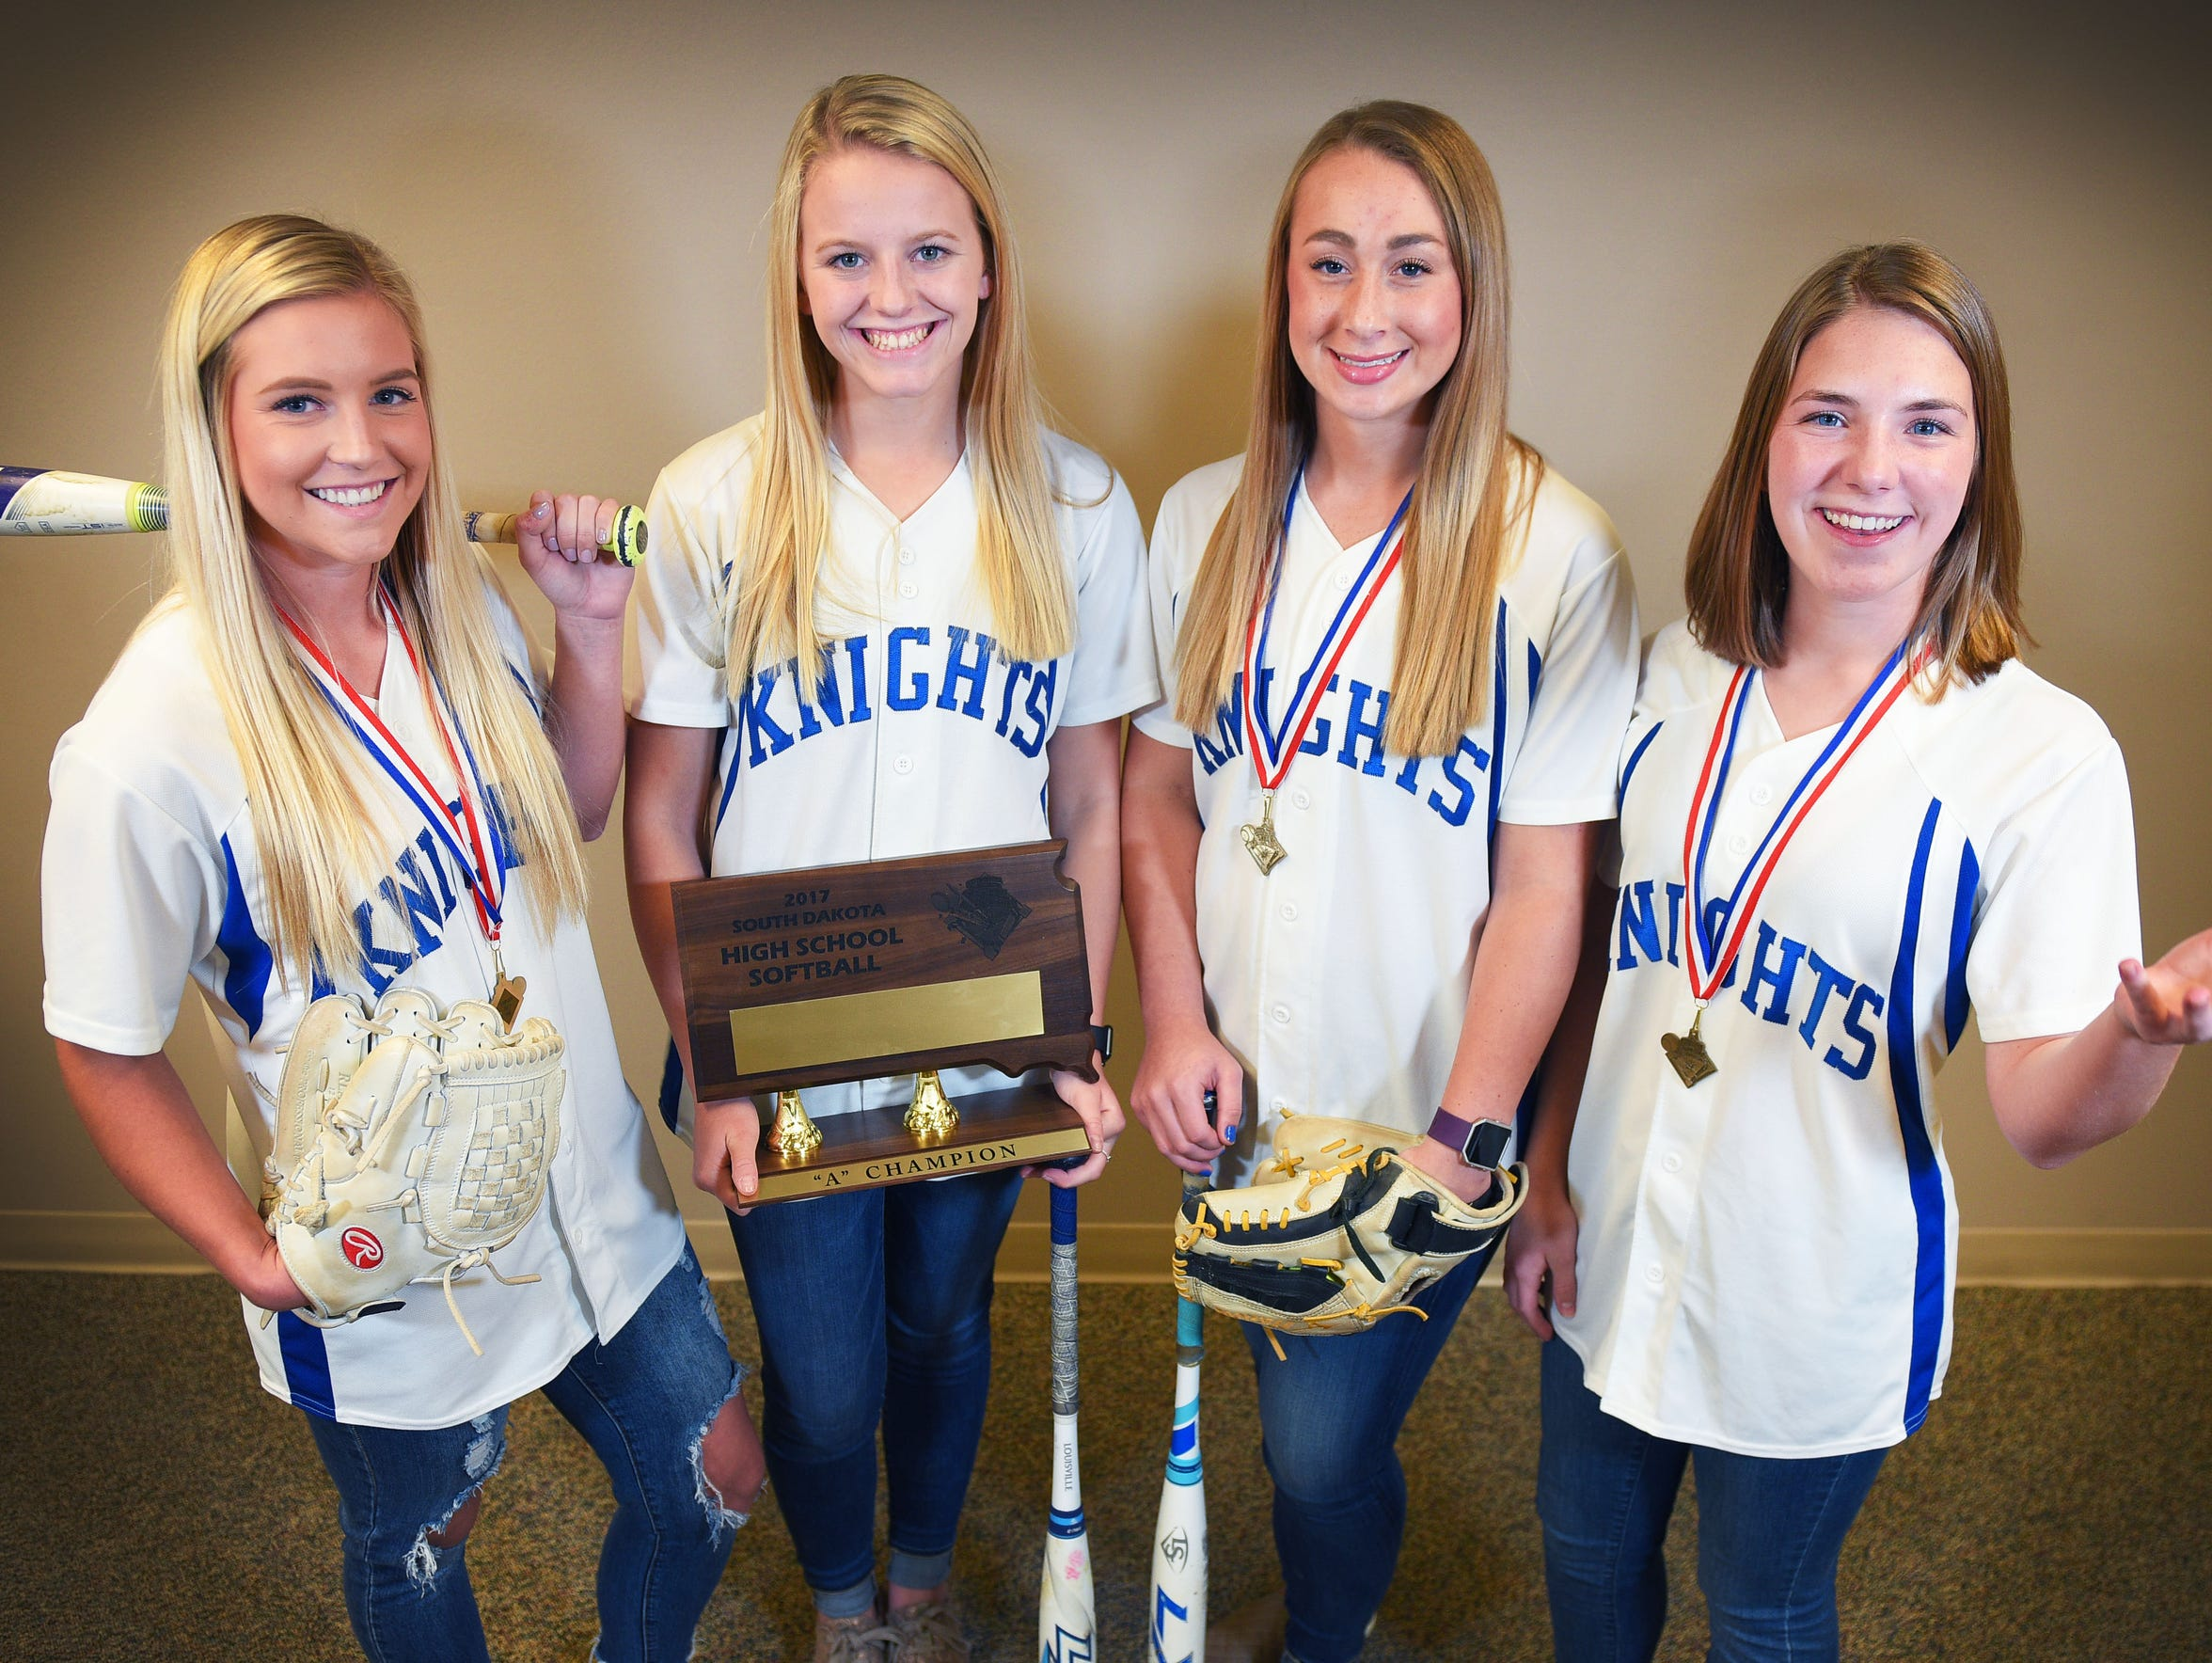 Gabbi Holbert (far left) was a key player for O'Gorman in their state championship run, joined by teammates (left to right) Hannah Loving, Izzy Mattecheck and Morgan Polak.